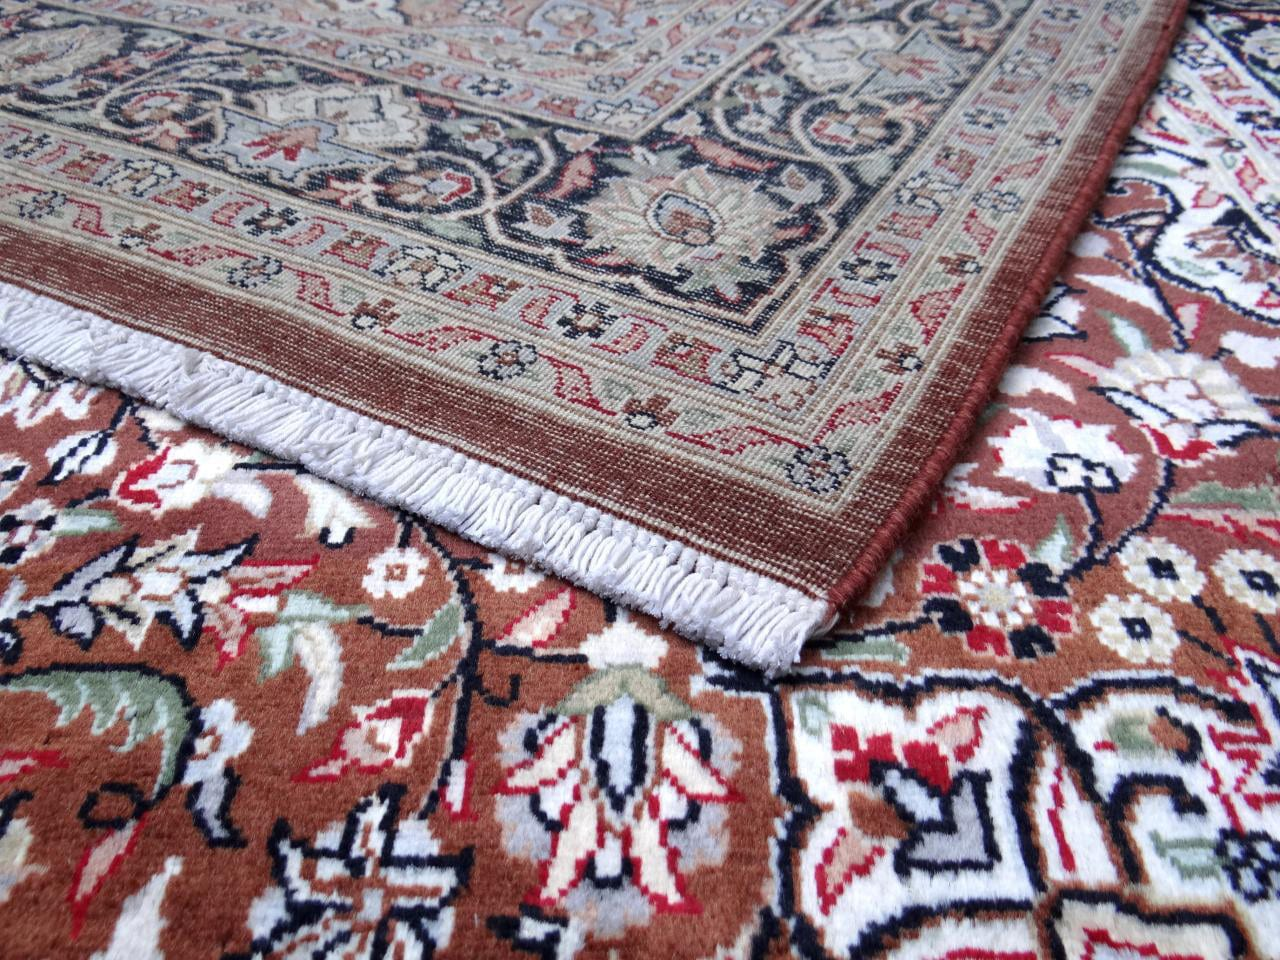 A Good Carpet-Cleaning Company Is a True Lifesaver in Many Situations